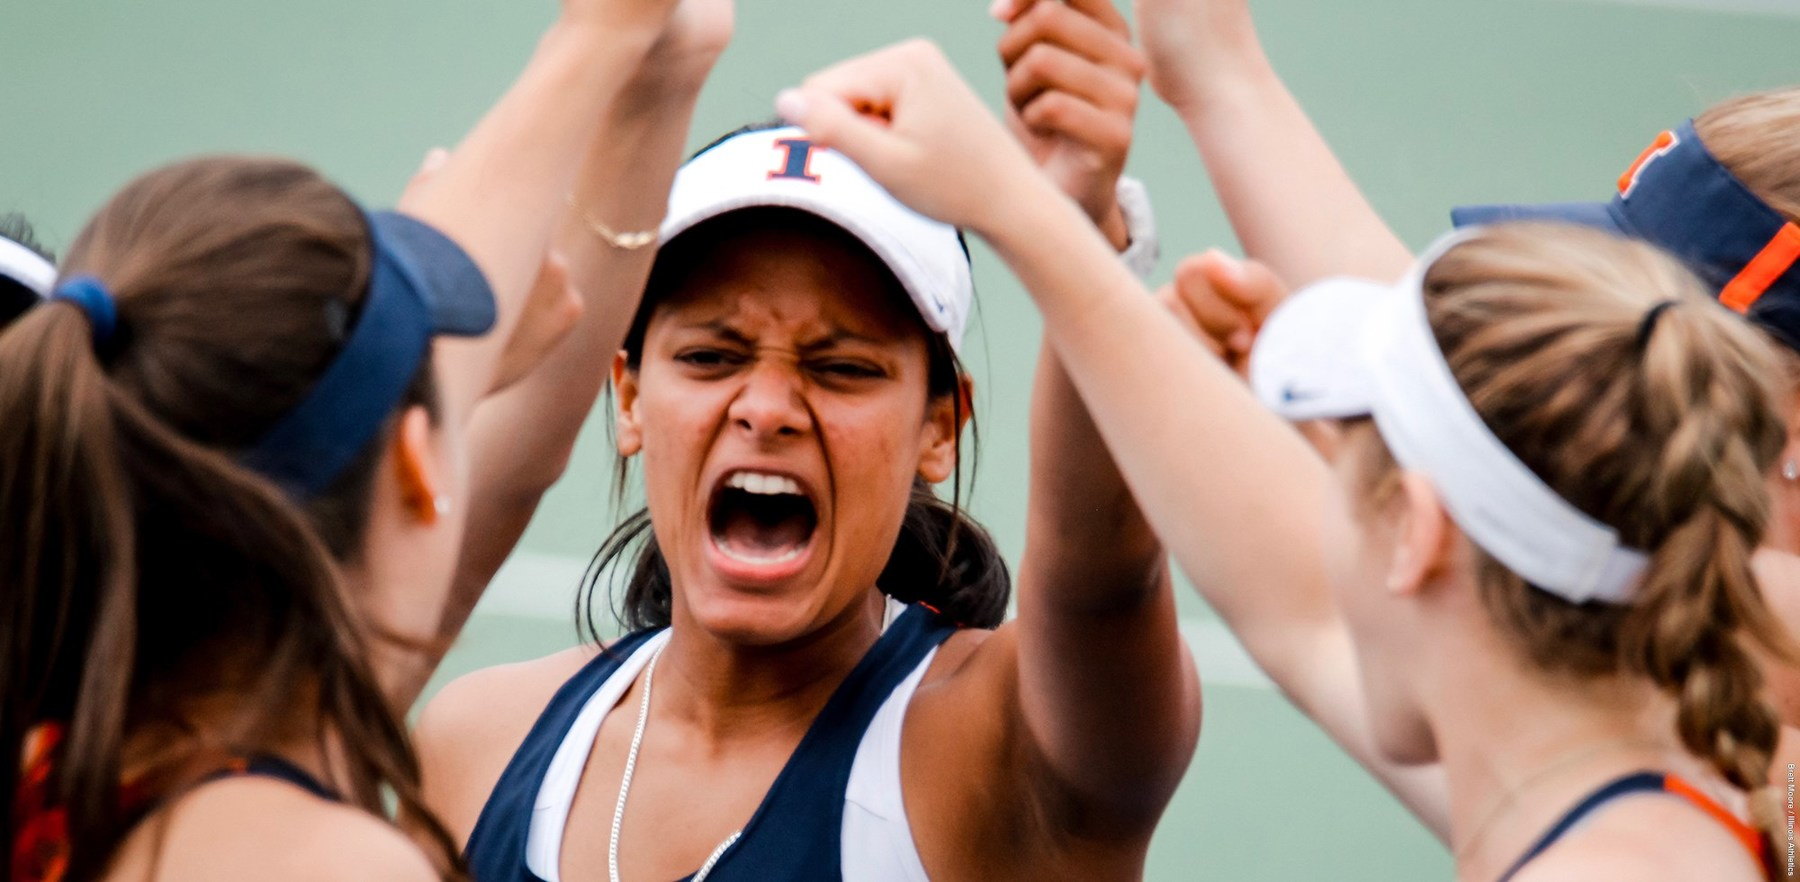 women's tennis player has a fierce expression as she shouts in celebration with teammates.